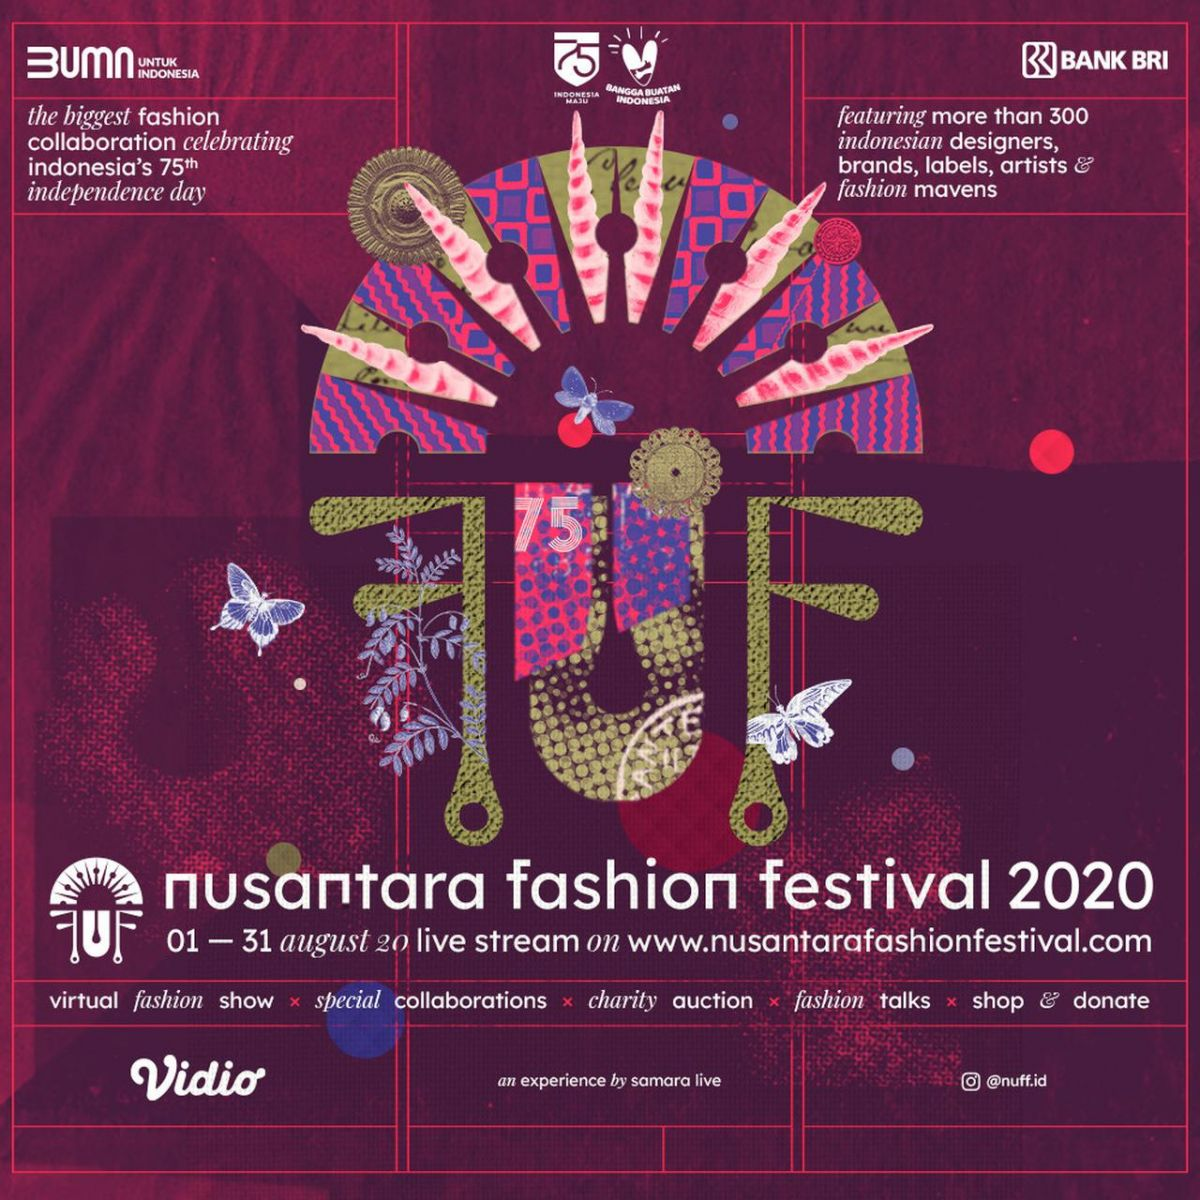 NUFF 2020: Digitalisasi Kunci Industri Fashion Makin Bertaji